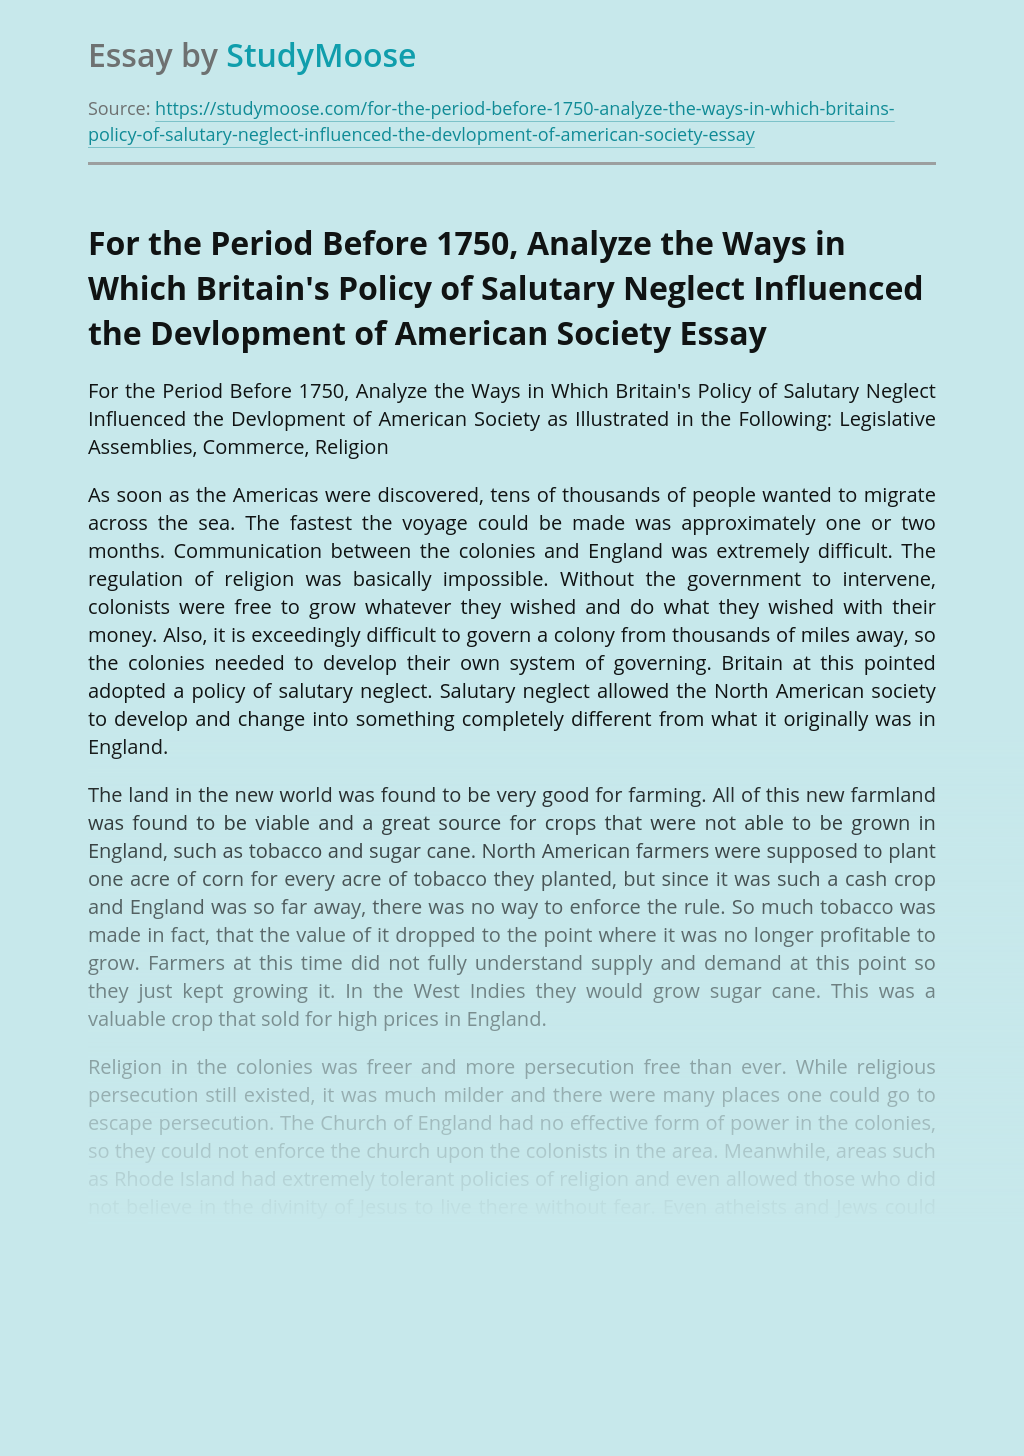 For the Period Before 1750, Analyze the Ways in Which Britain's Policy of Salutary Neglect Influenced the Devlopment of American Society